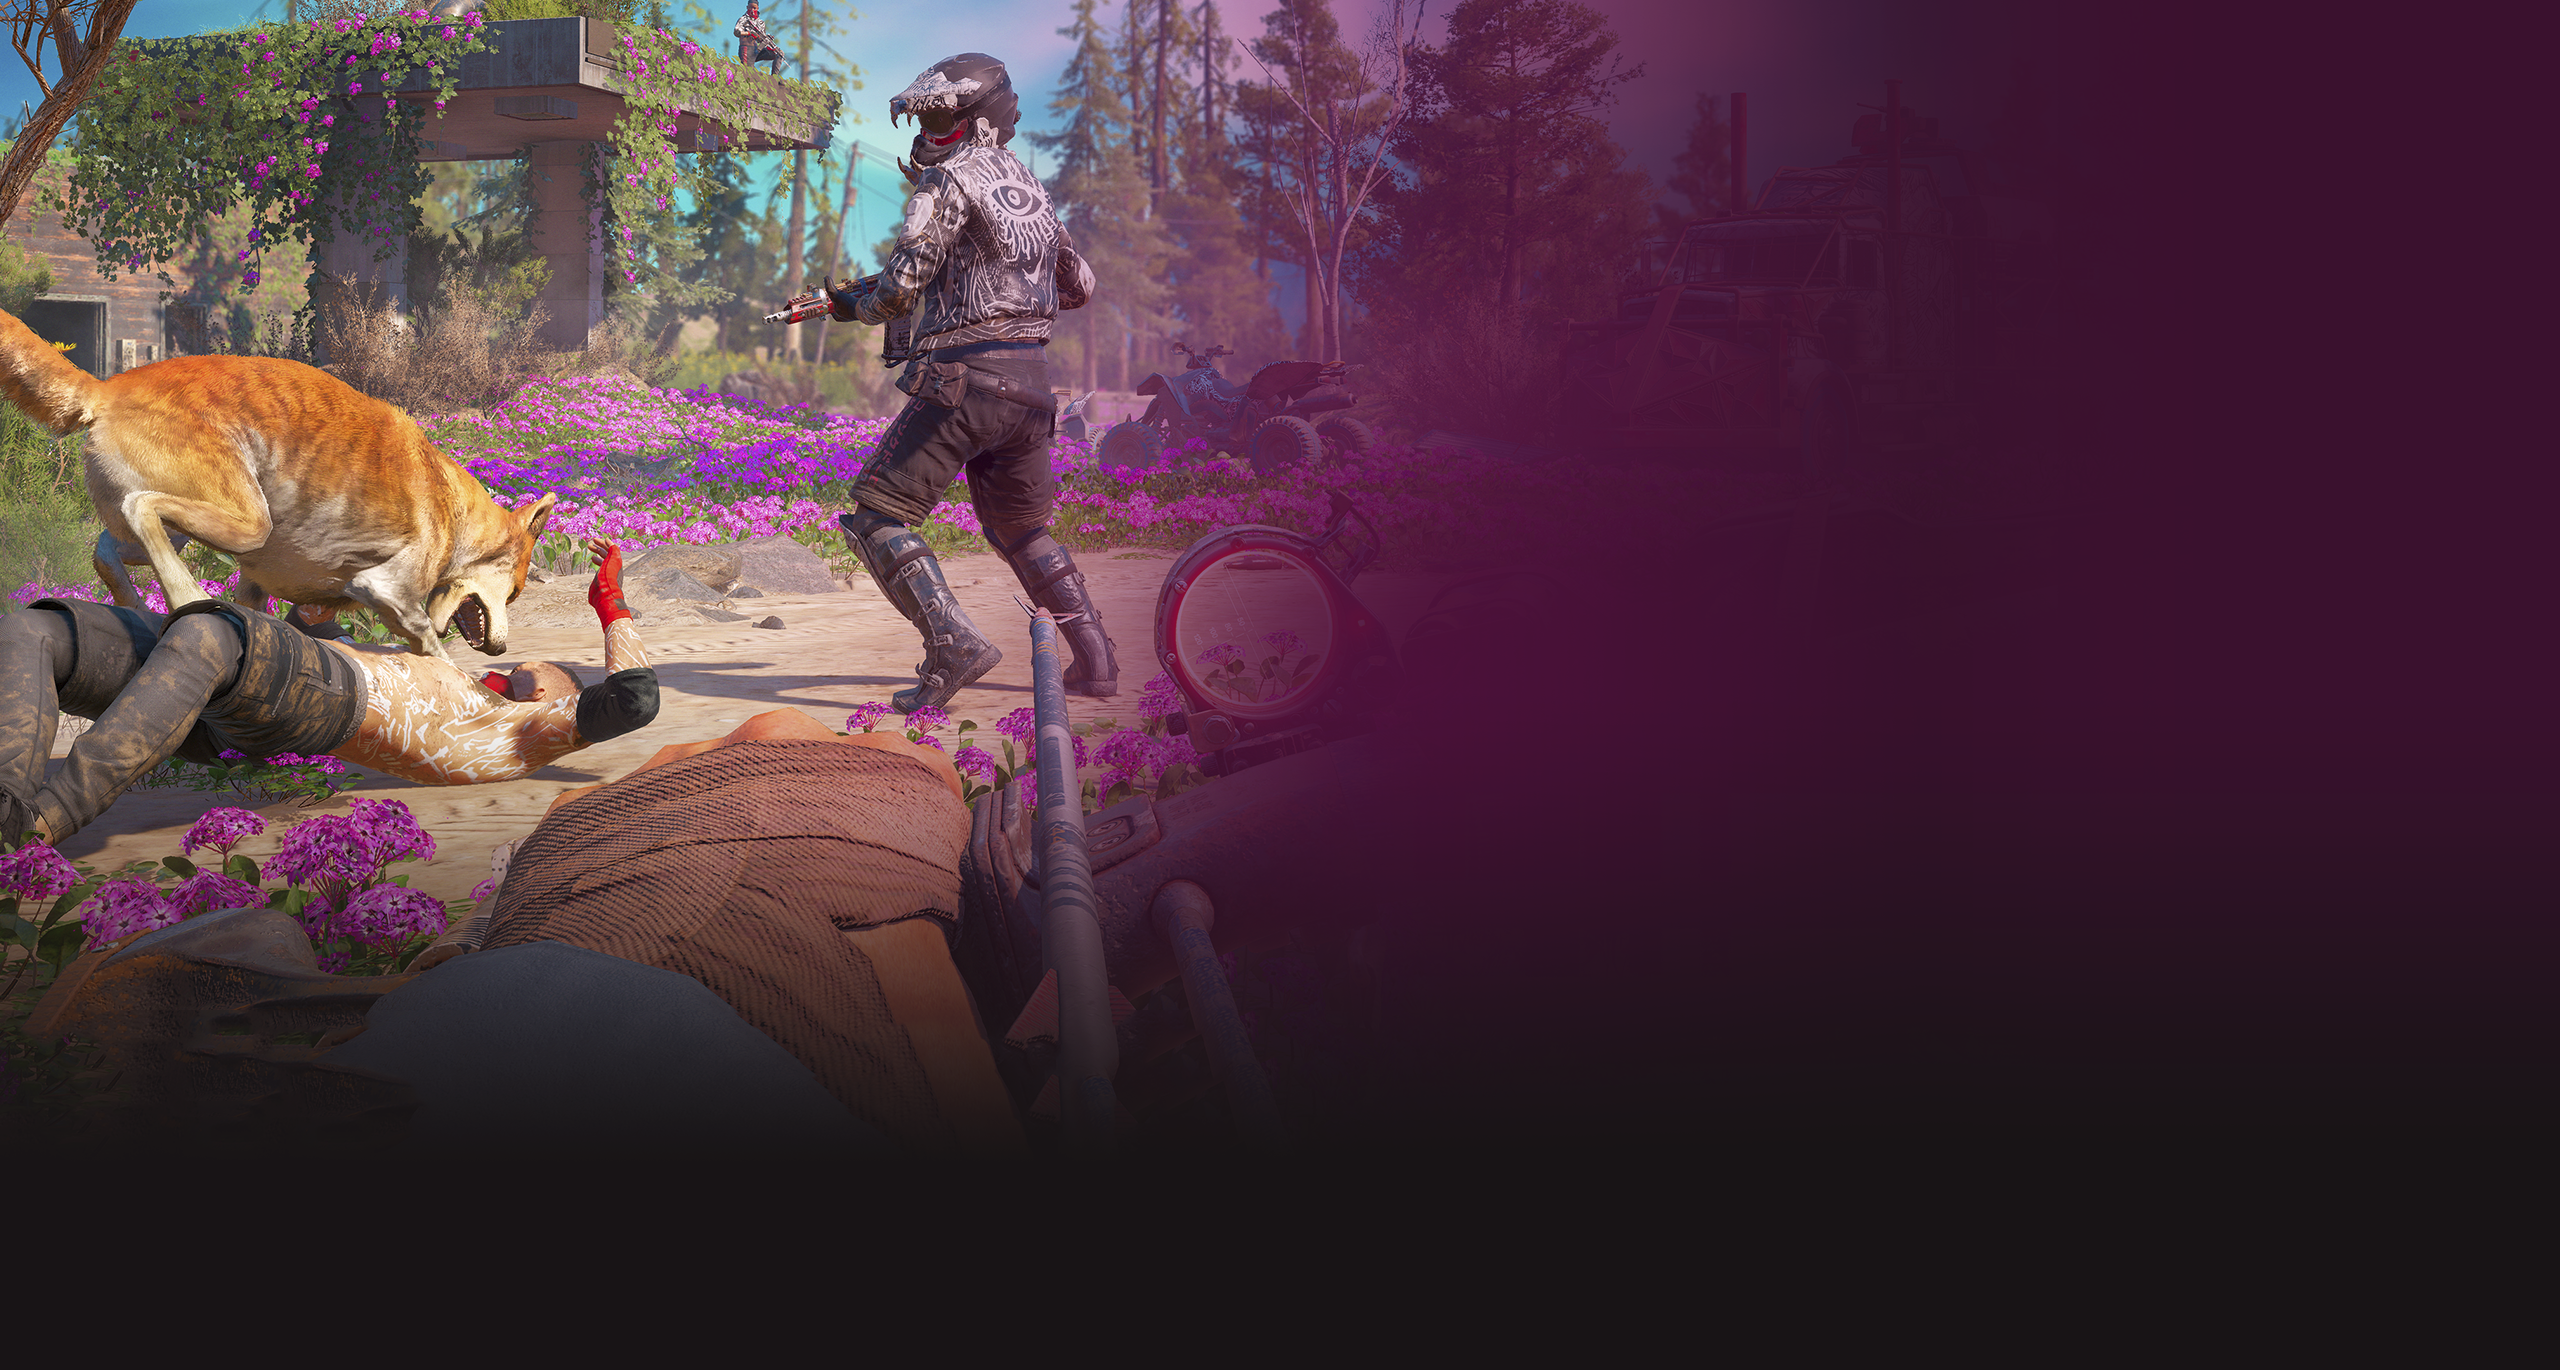 Izjemne postapokaliptične igre za sistem PS4 – Far Cry New Dawn